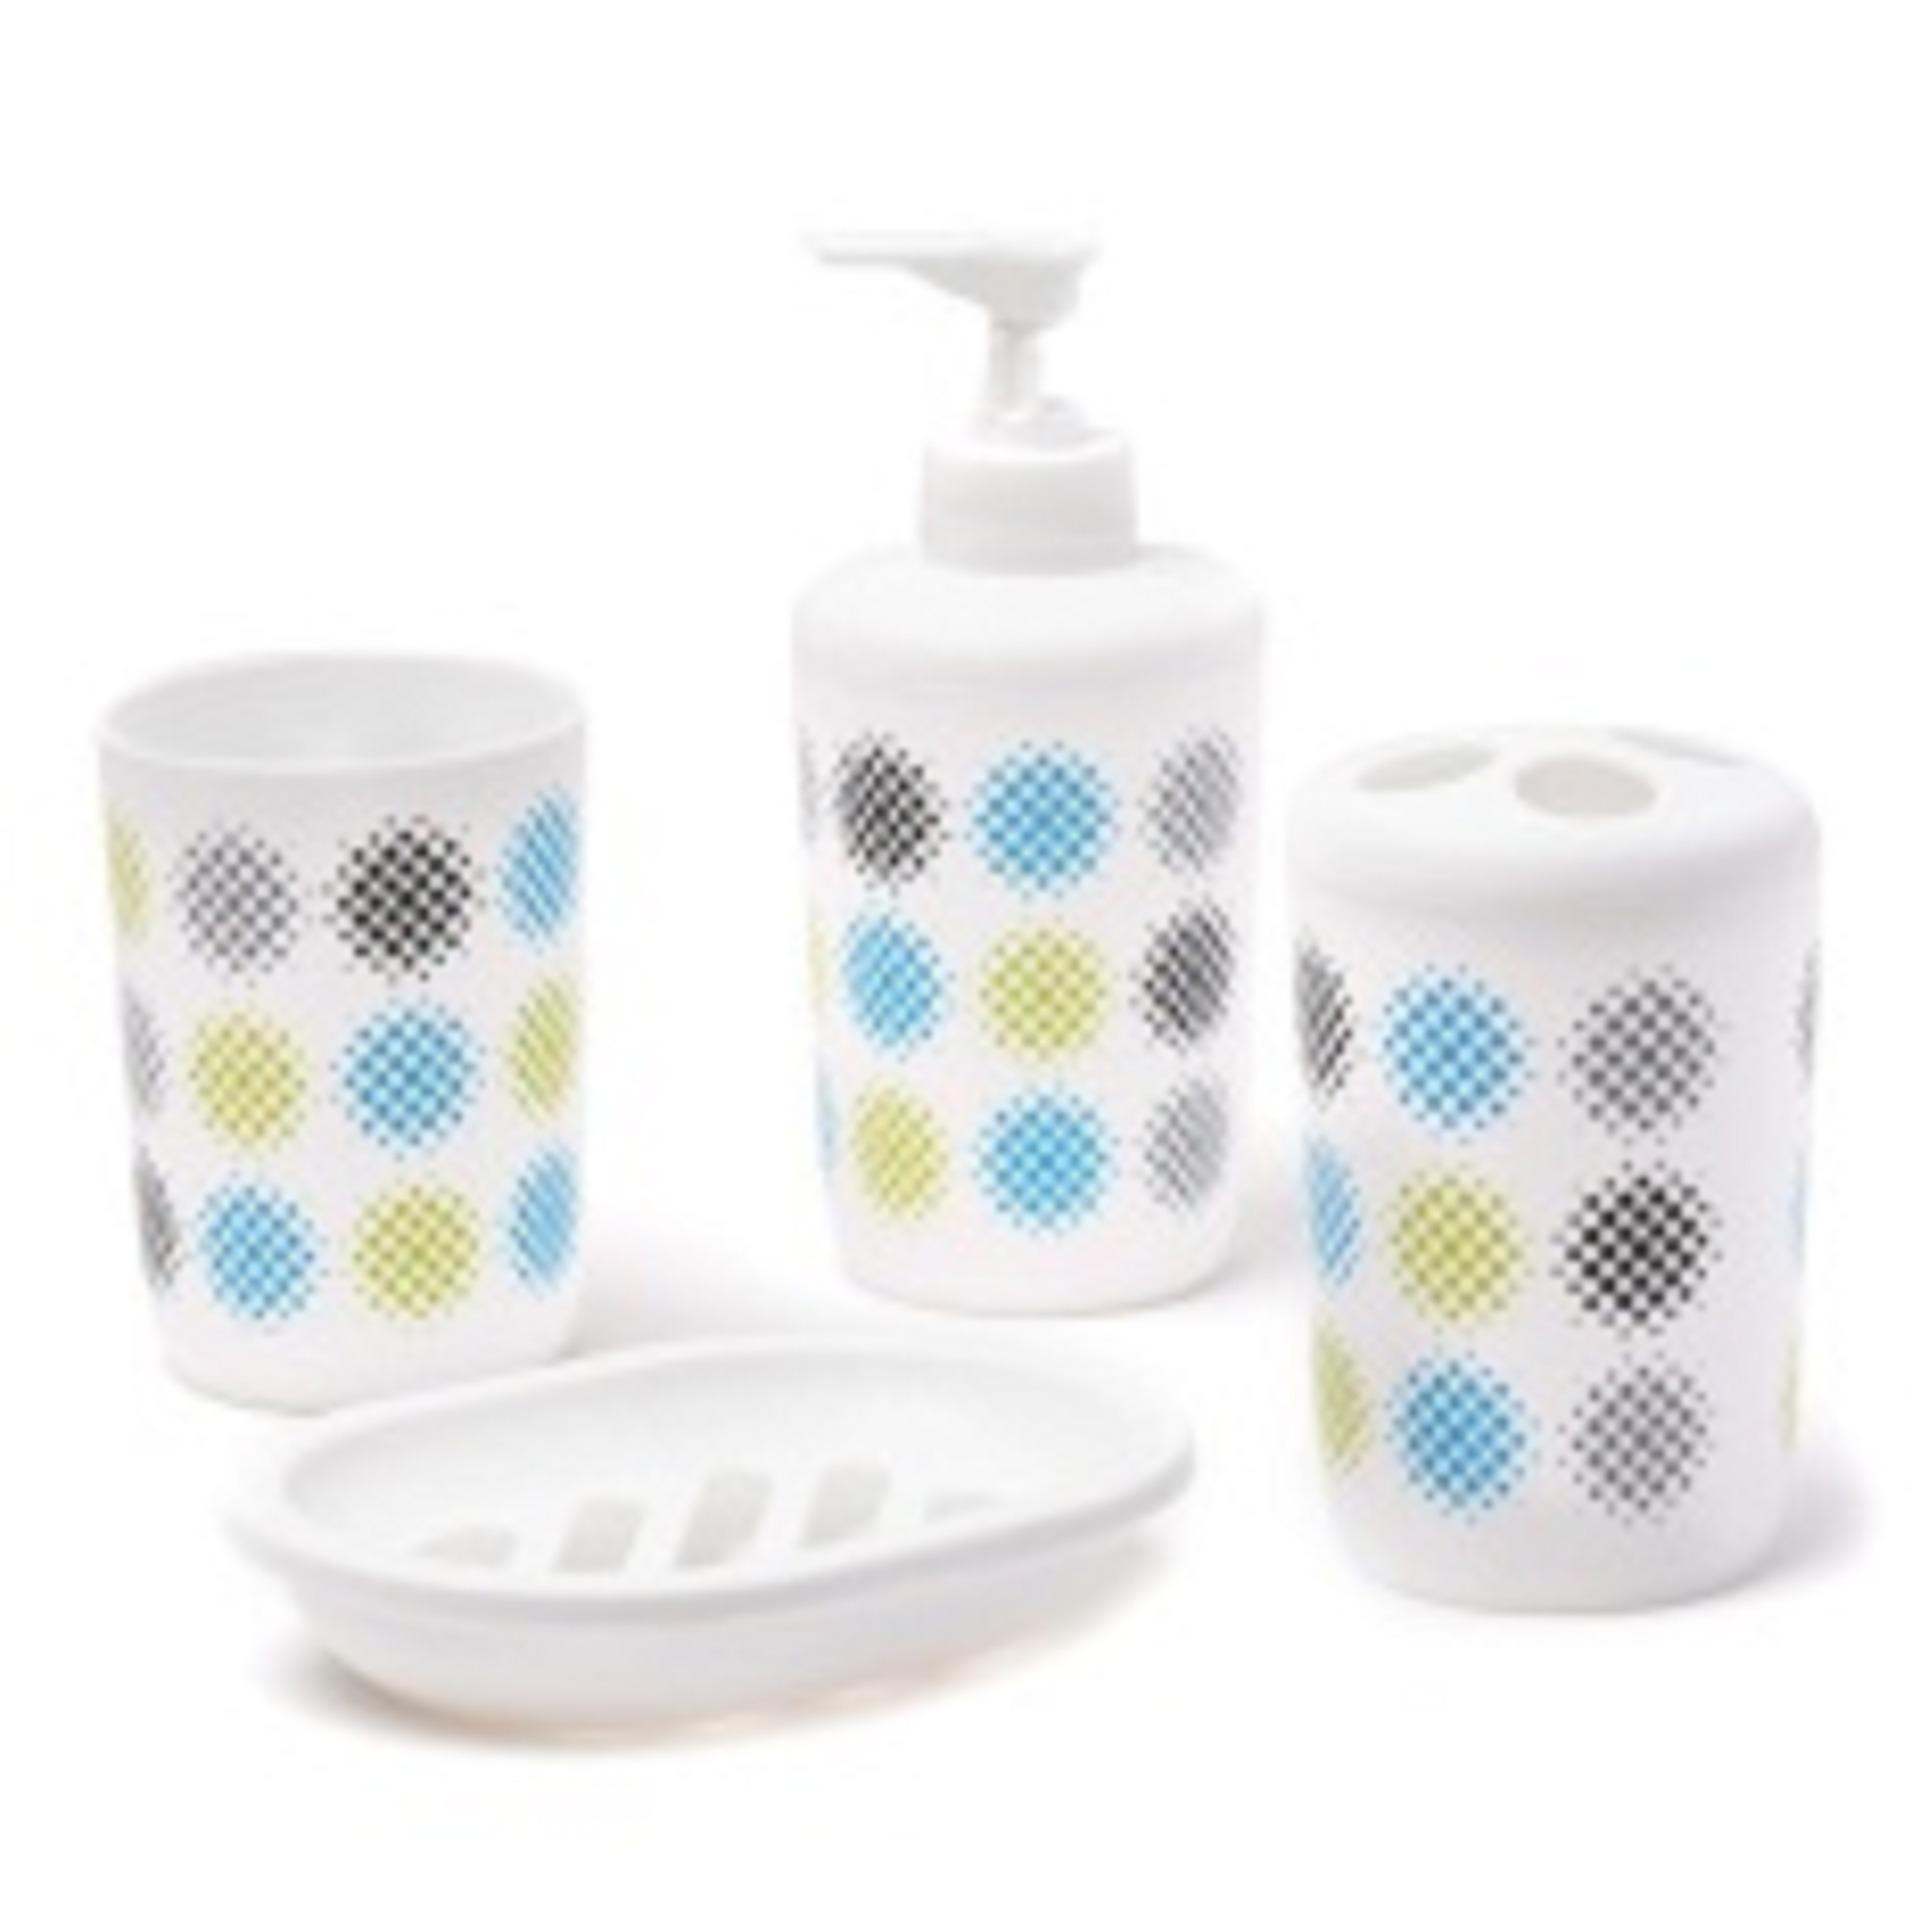 4-piece Aspire Aqua Serene Bathroom Essential Gift Set (Tumbler, Toothbrush Holder, Soap Holder, Lotion Dispenser) Aqua Serene